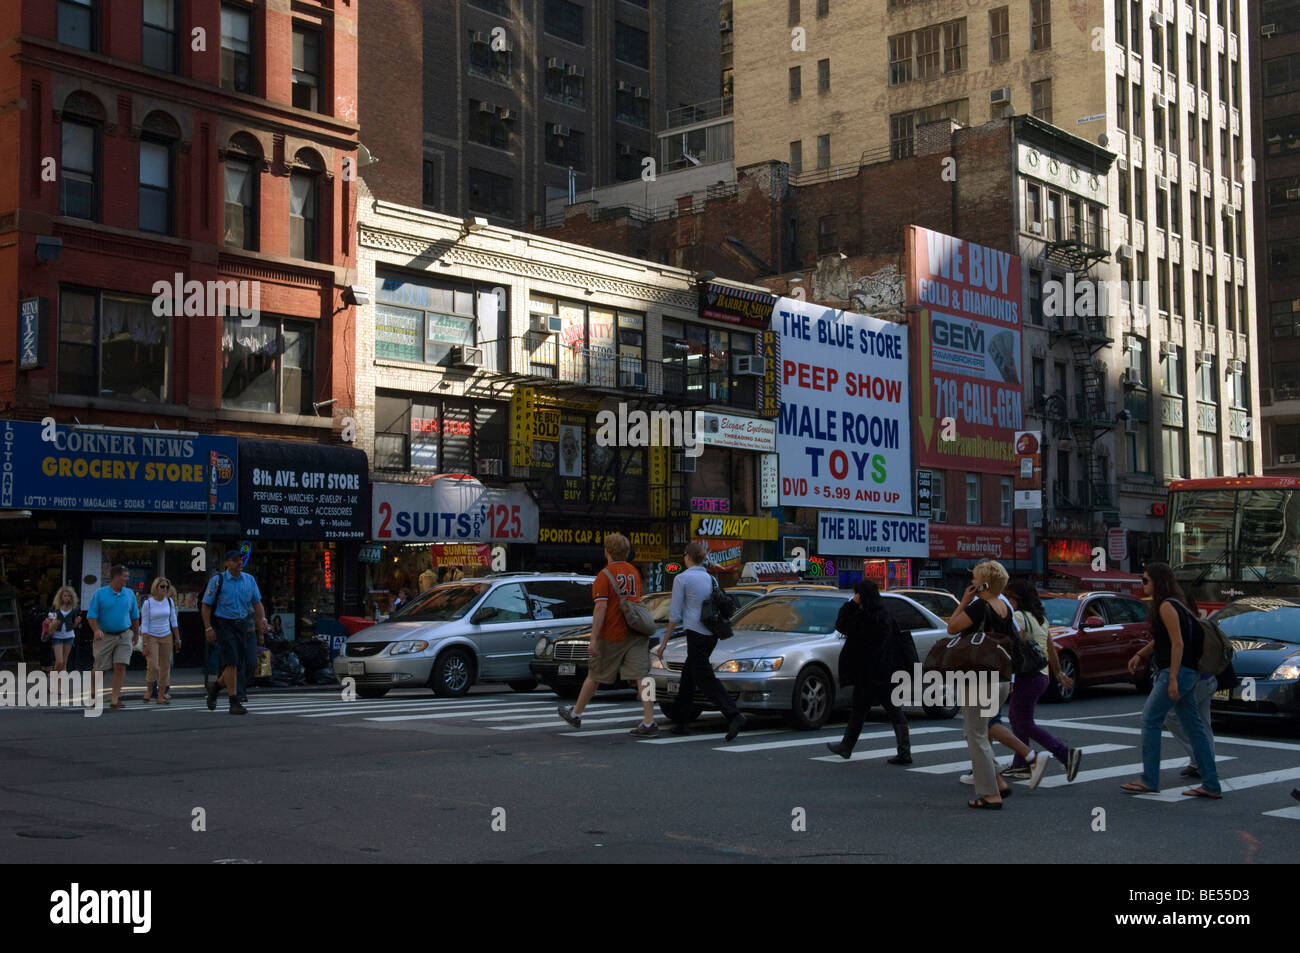 Stores along the east side of Eighth Avenue between 40th street and 39 street near Times Square in New York - Stock Image